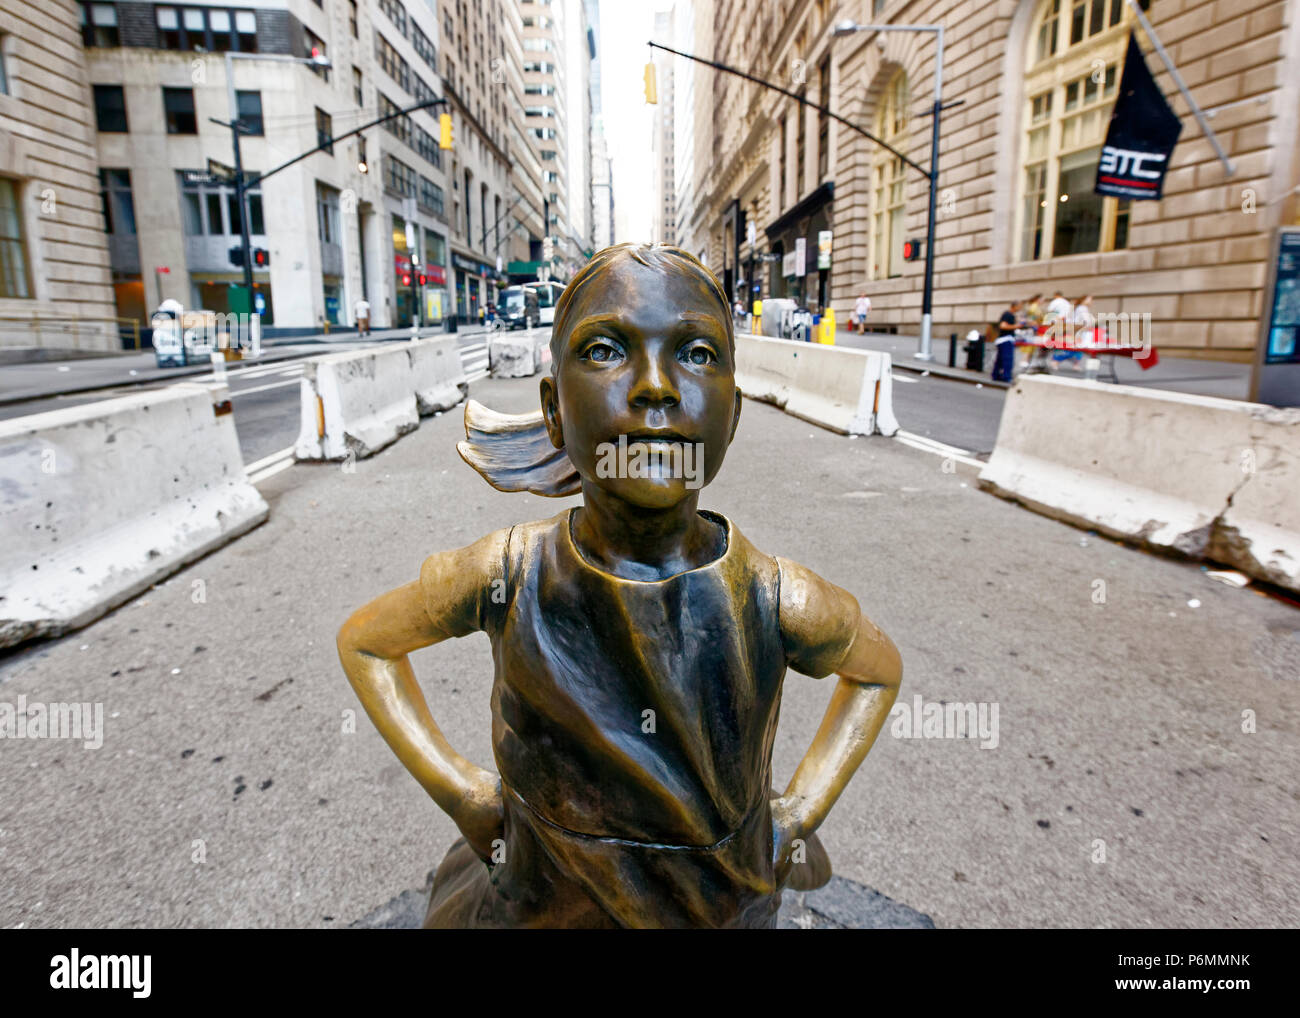 Fearless girl statue at its original location on wall street - Stock Image